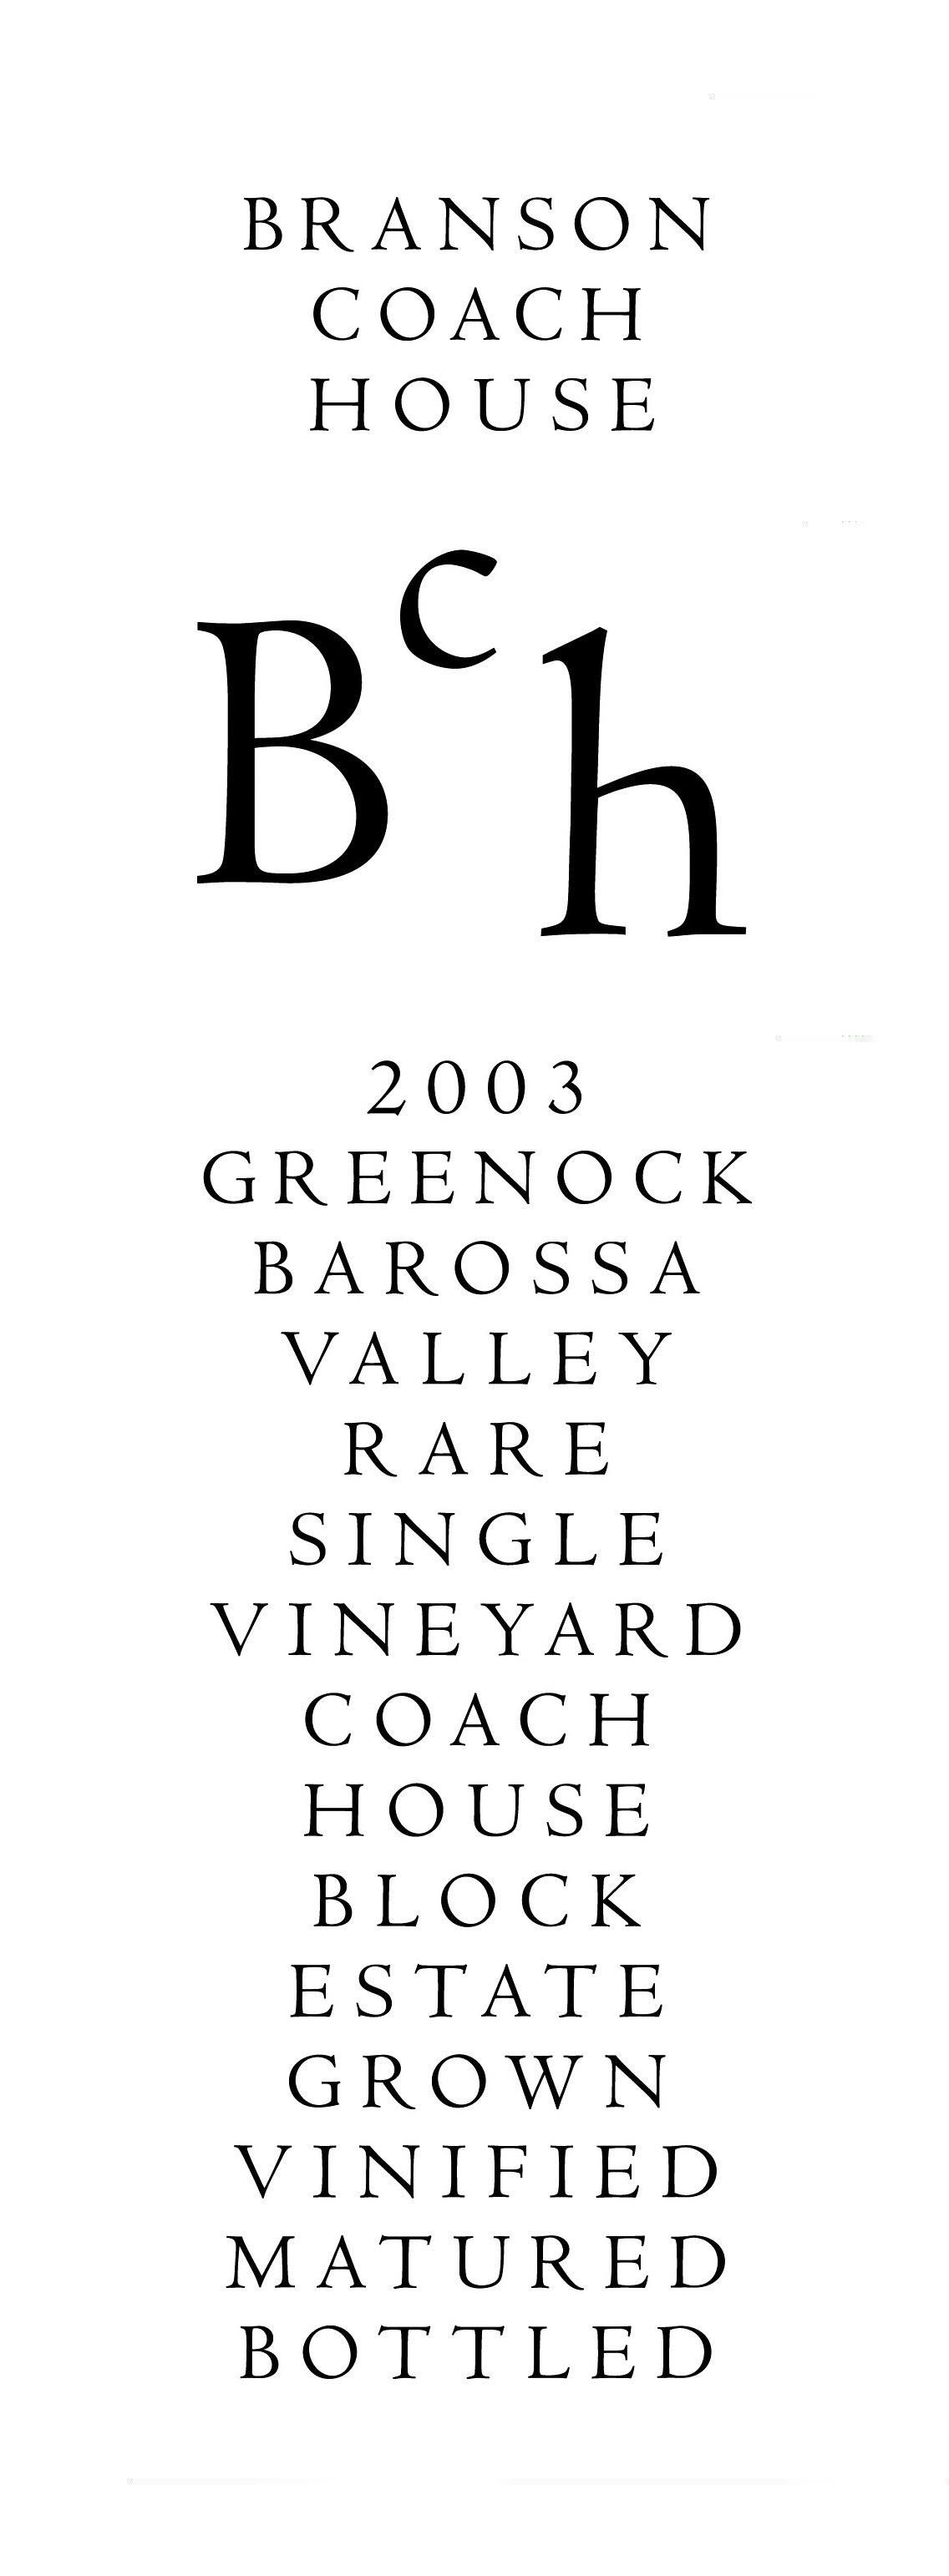 Branson Coach House Shiraz Barossa Valley Greenock Block 2003 Front Label